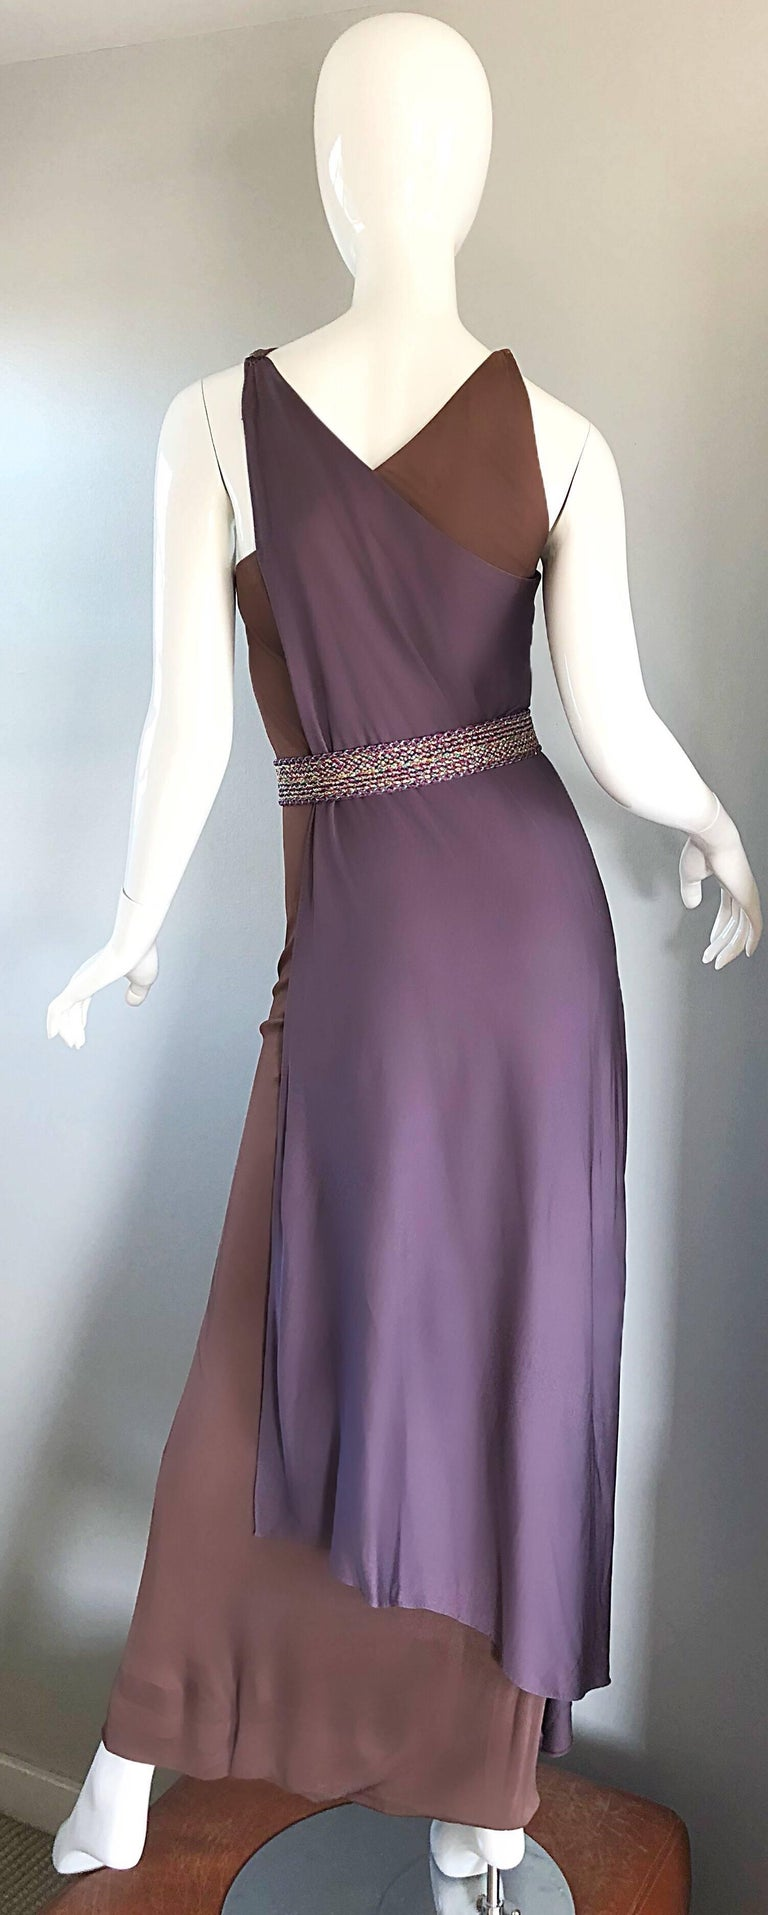 Vintage Bill Blass 1970s Purple + Brown Grecian Inspired Silk Jersey Belted Gown For Sale 1